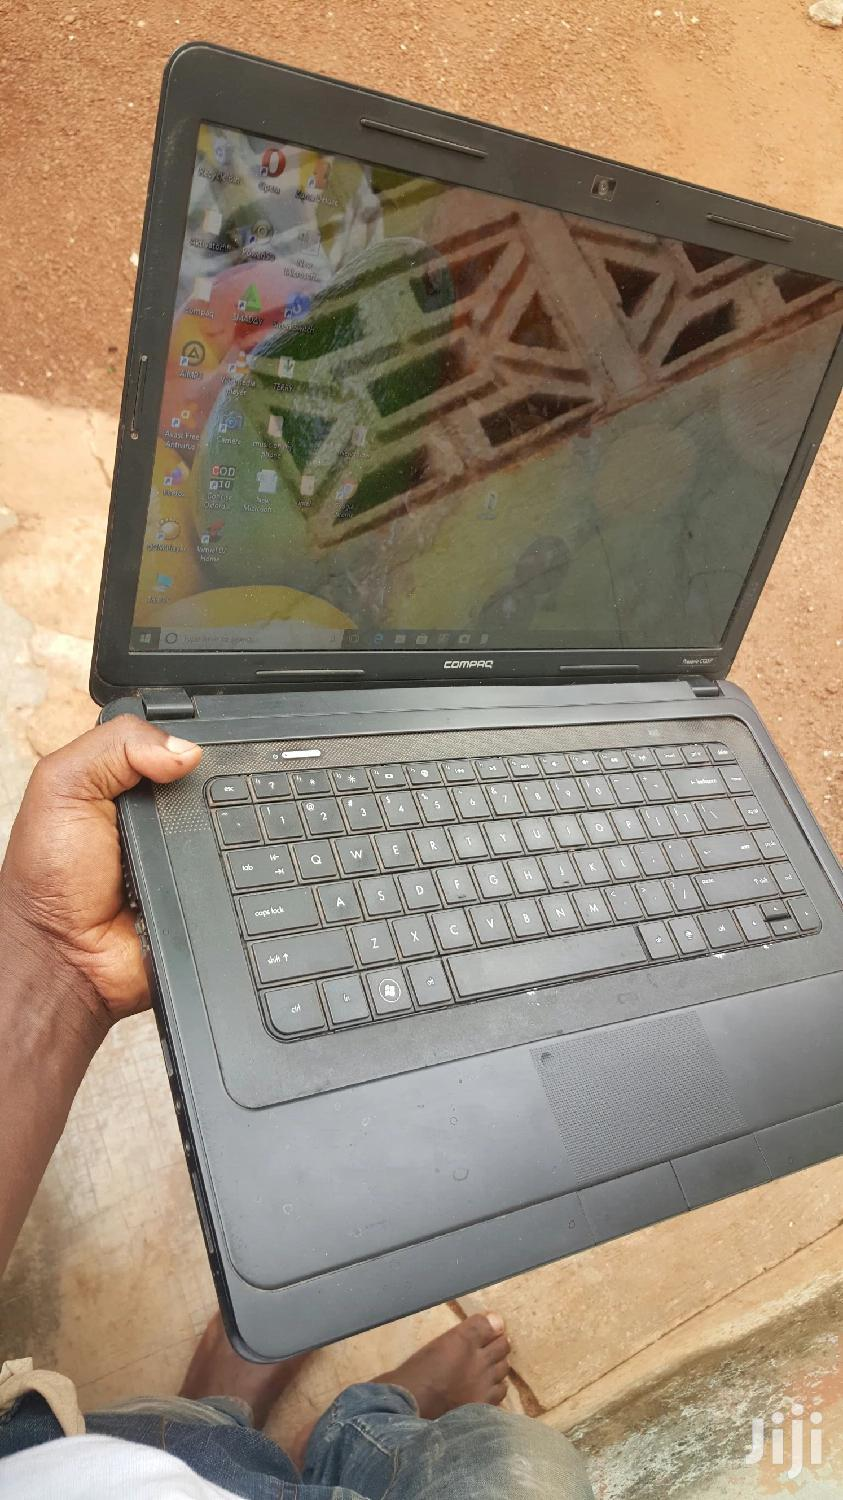 Laptop HP Compaq Presario CQ57 4GB Intel Core 2 Duo HDD 320GB | Laptops & Computers for sale in Tamale Municipal, Northern Region, Ghana